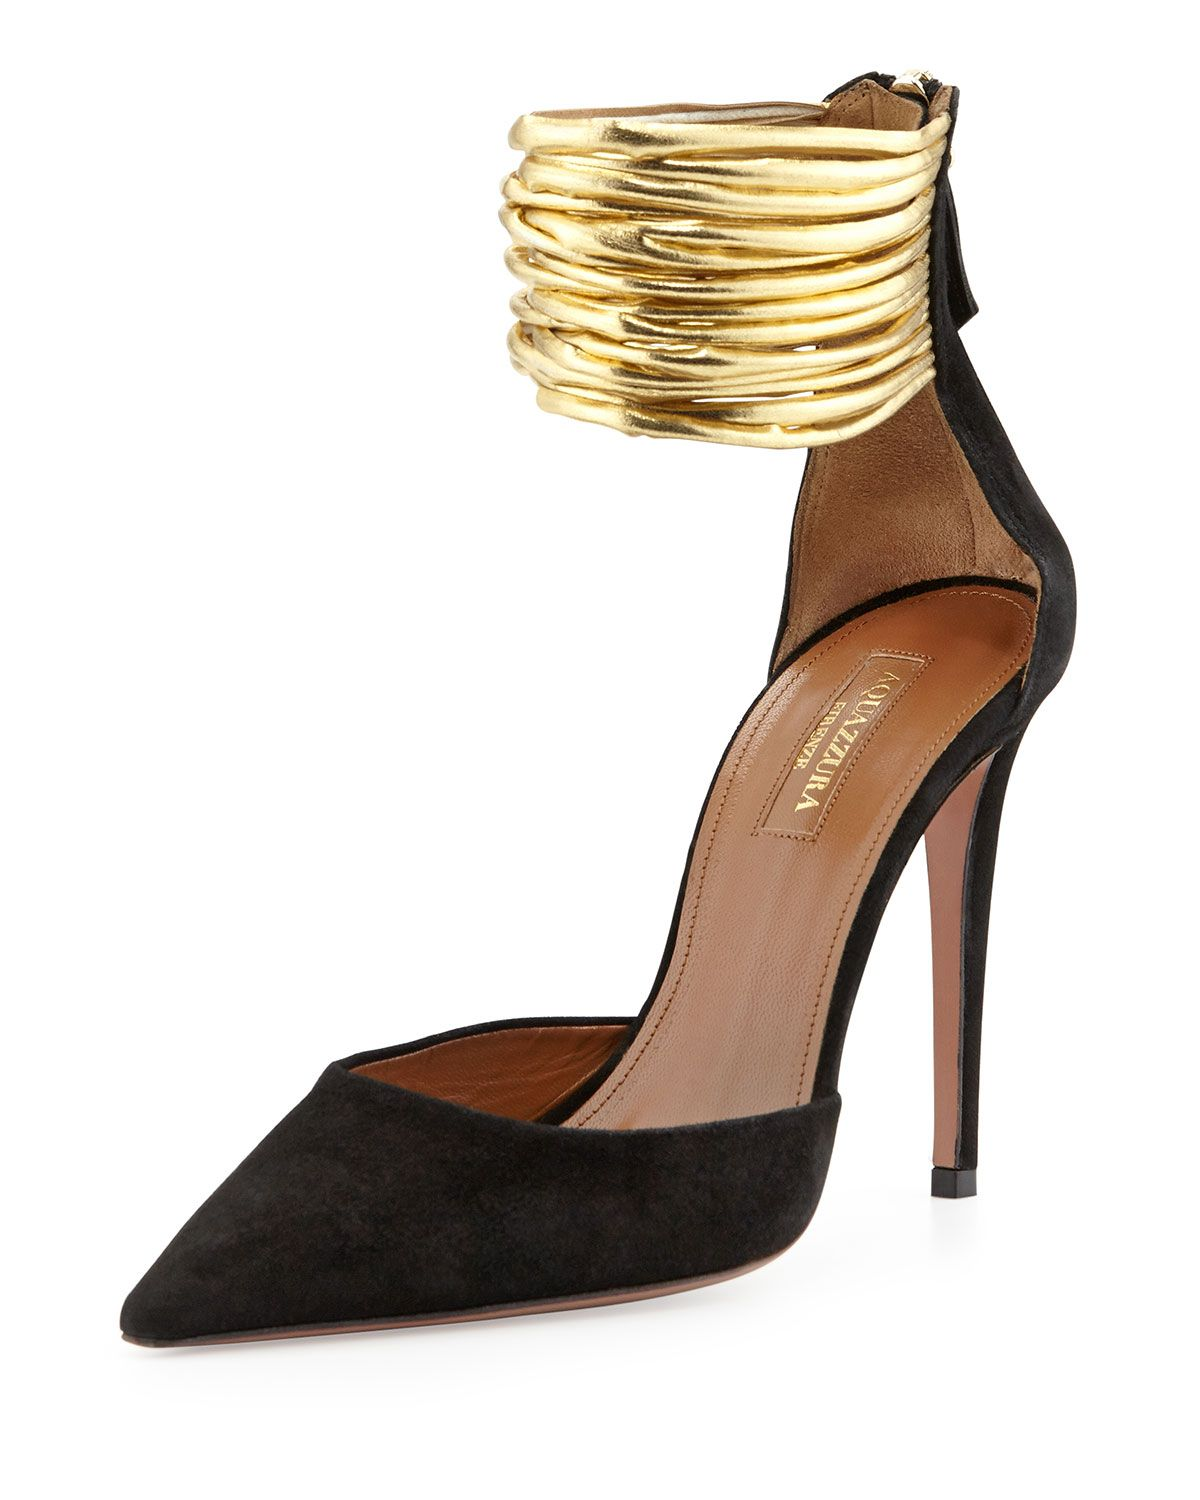 double ankle strap pumps - Black Aquazzura PLhYXBoFAE